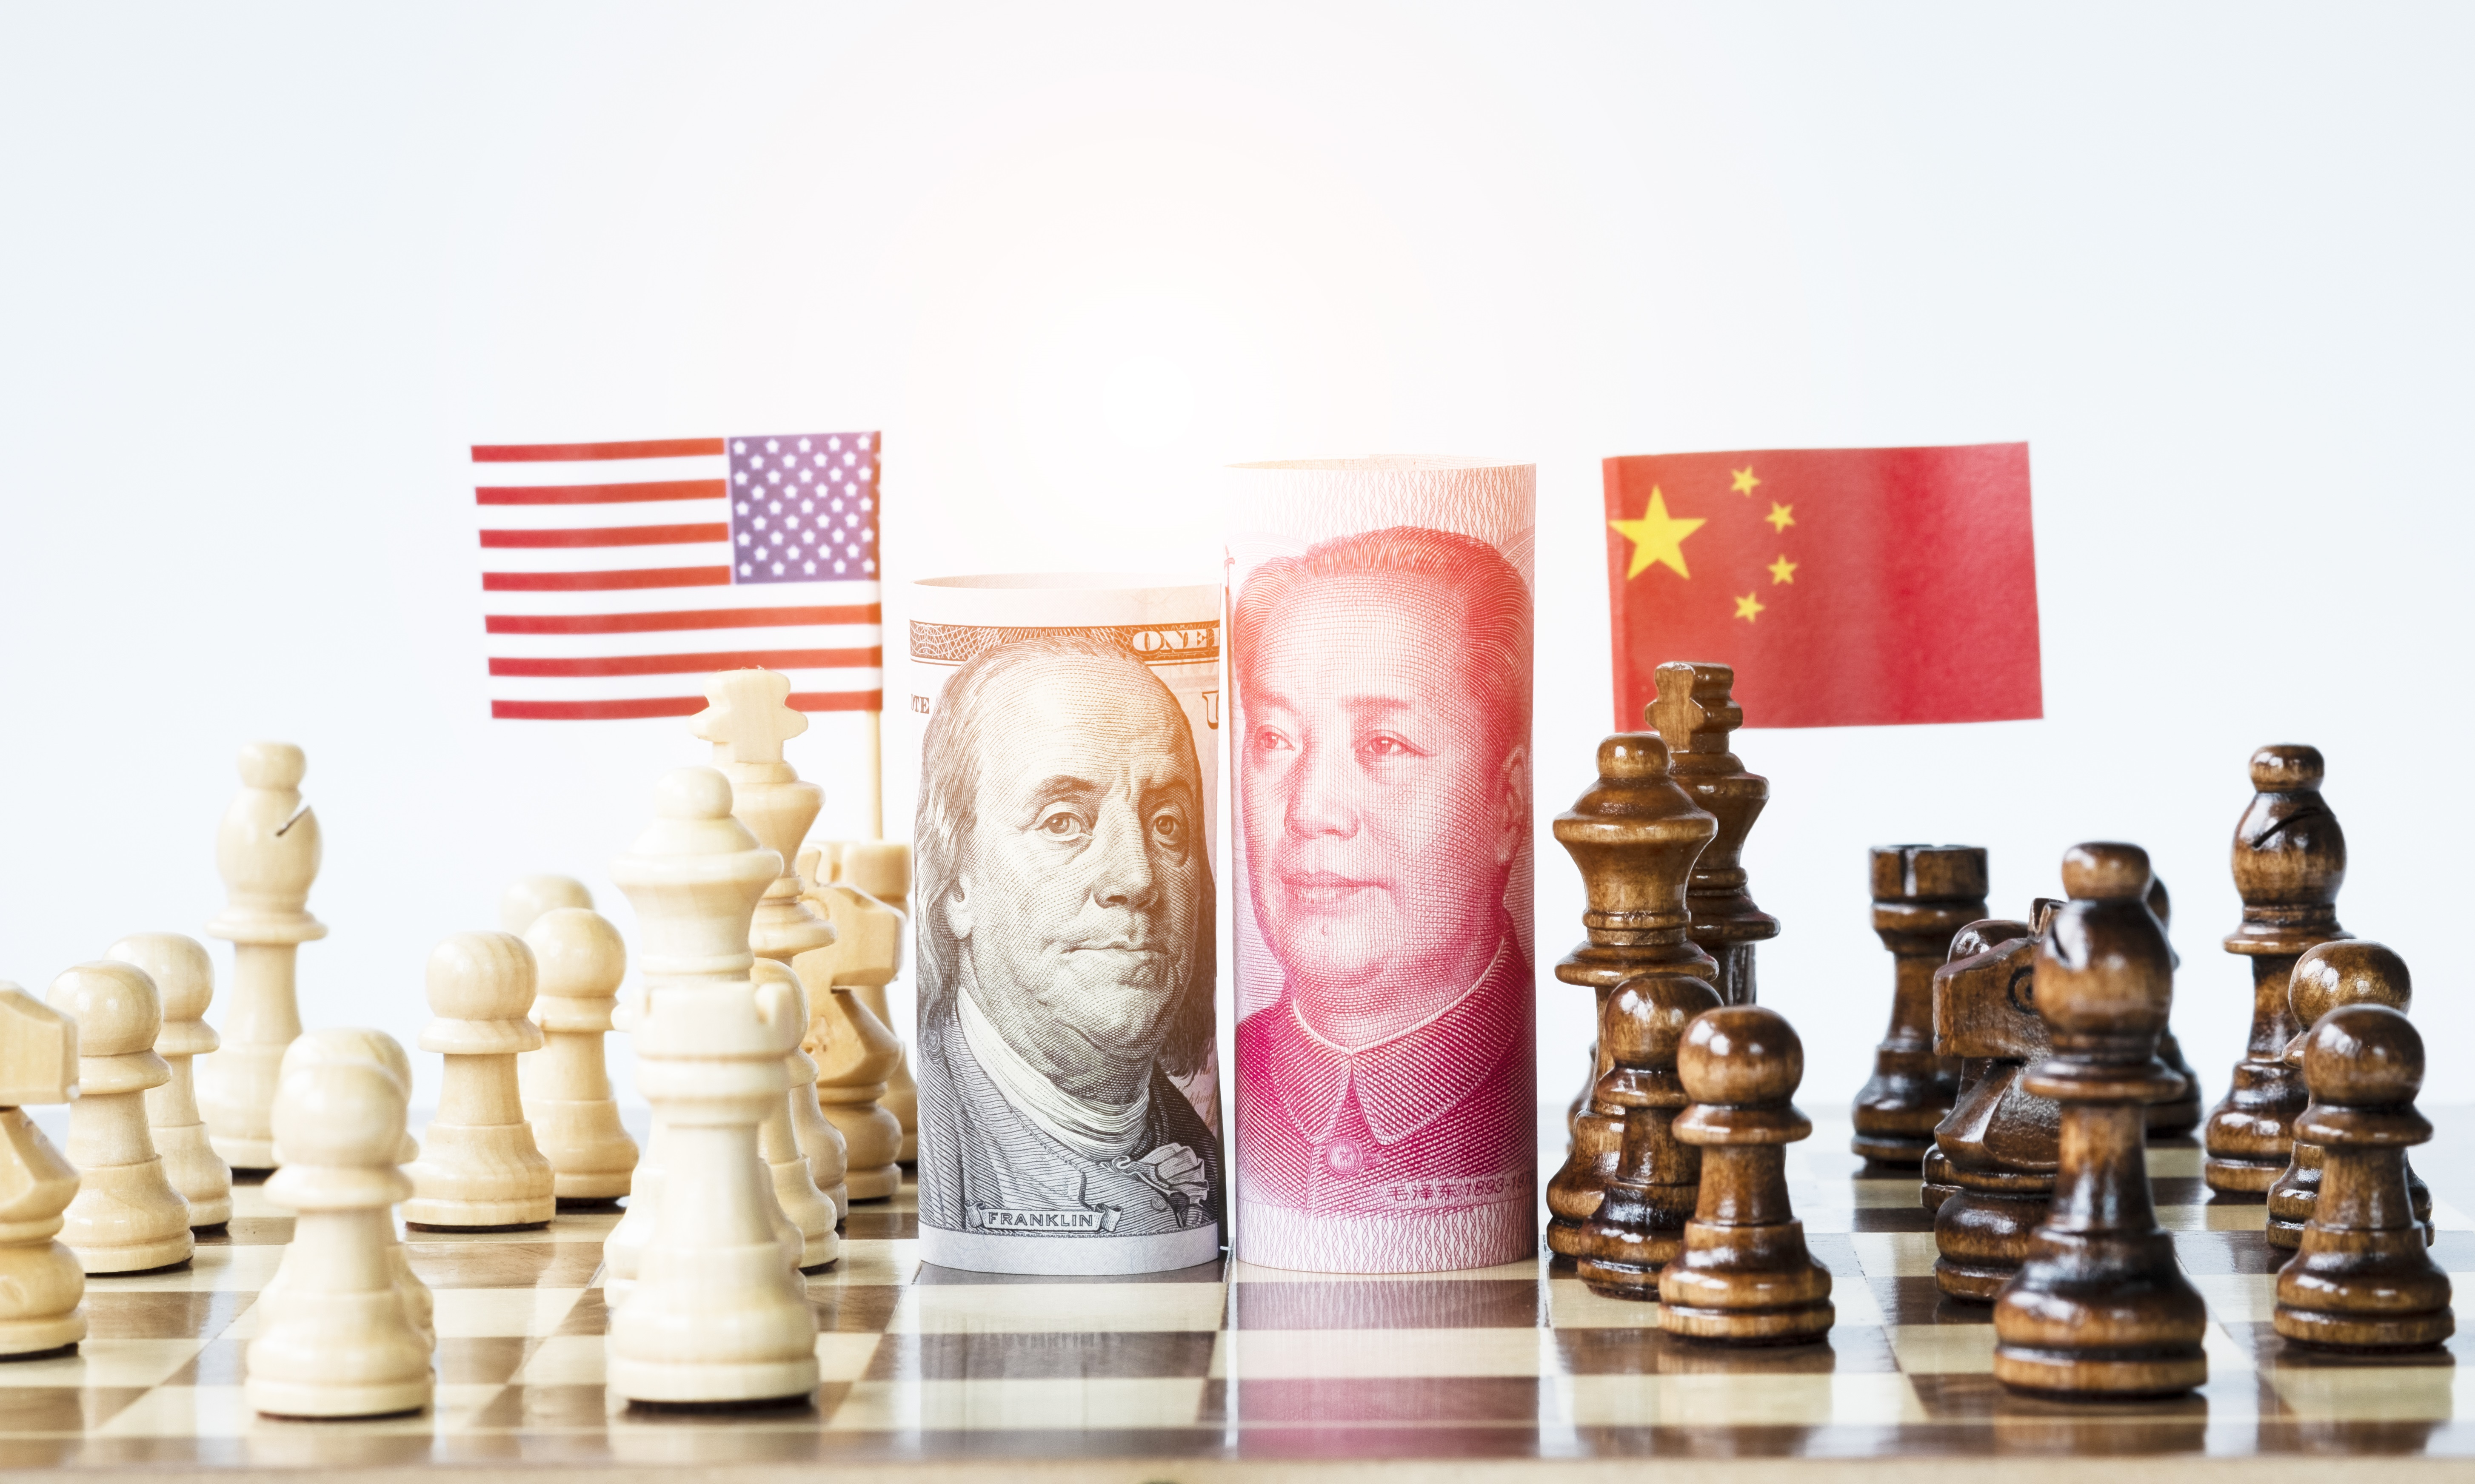 Erroneous assumptions of others' pursuits and exaggeration of the good they have accomplished are common phenomena in international relations. (iStock)